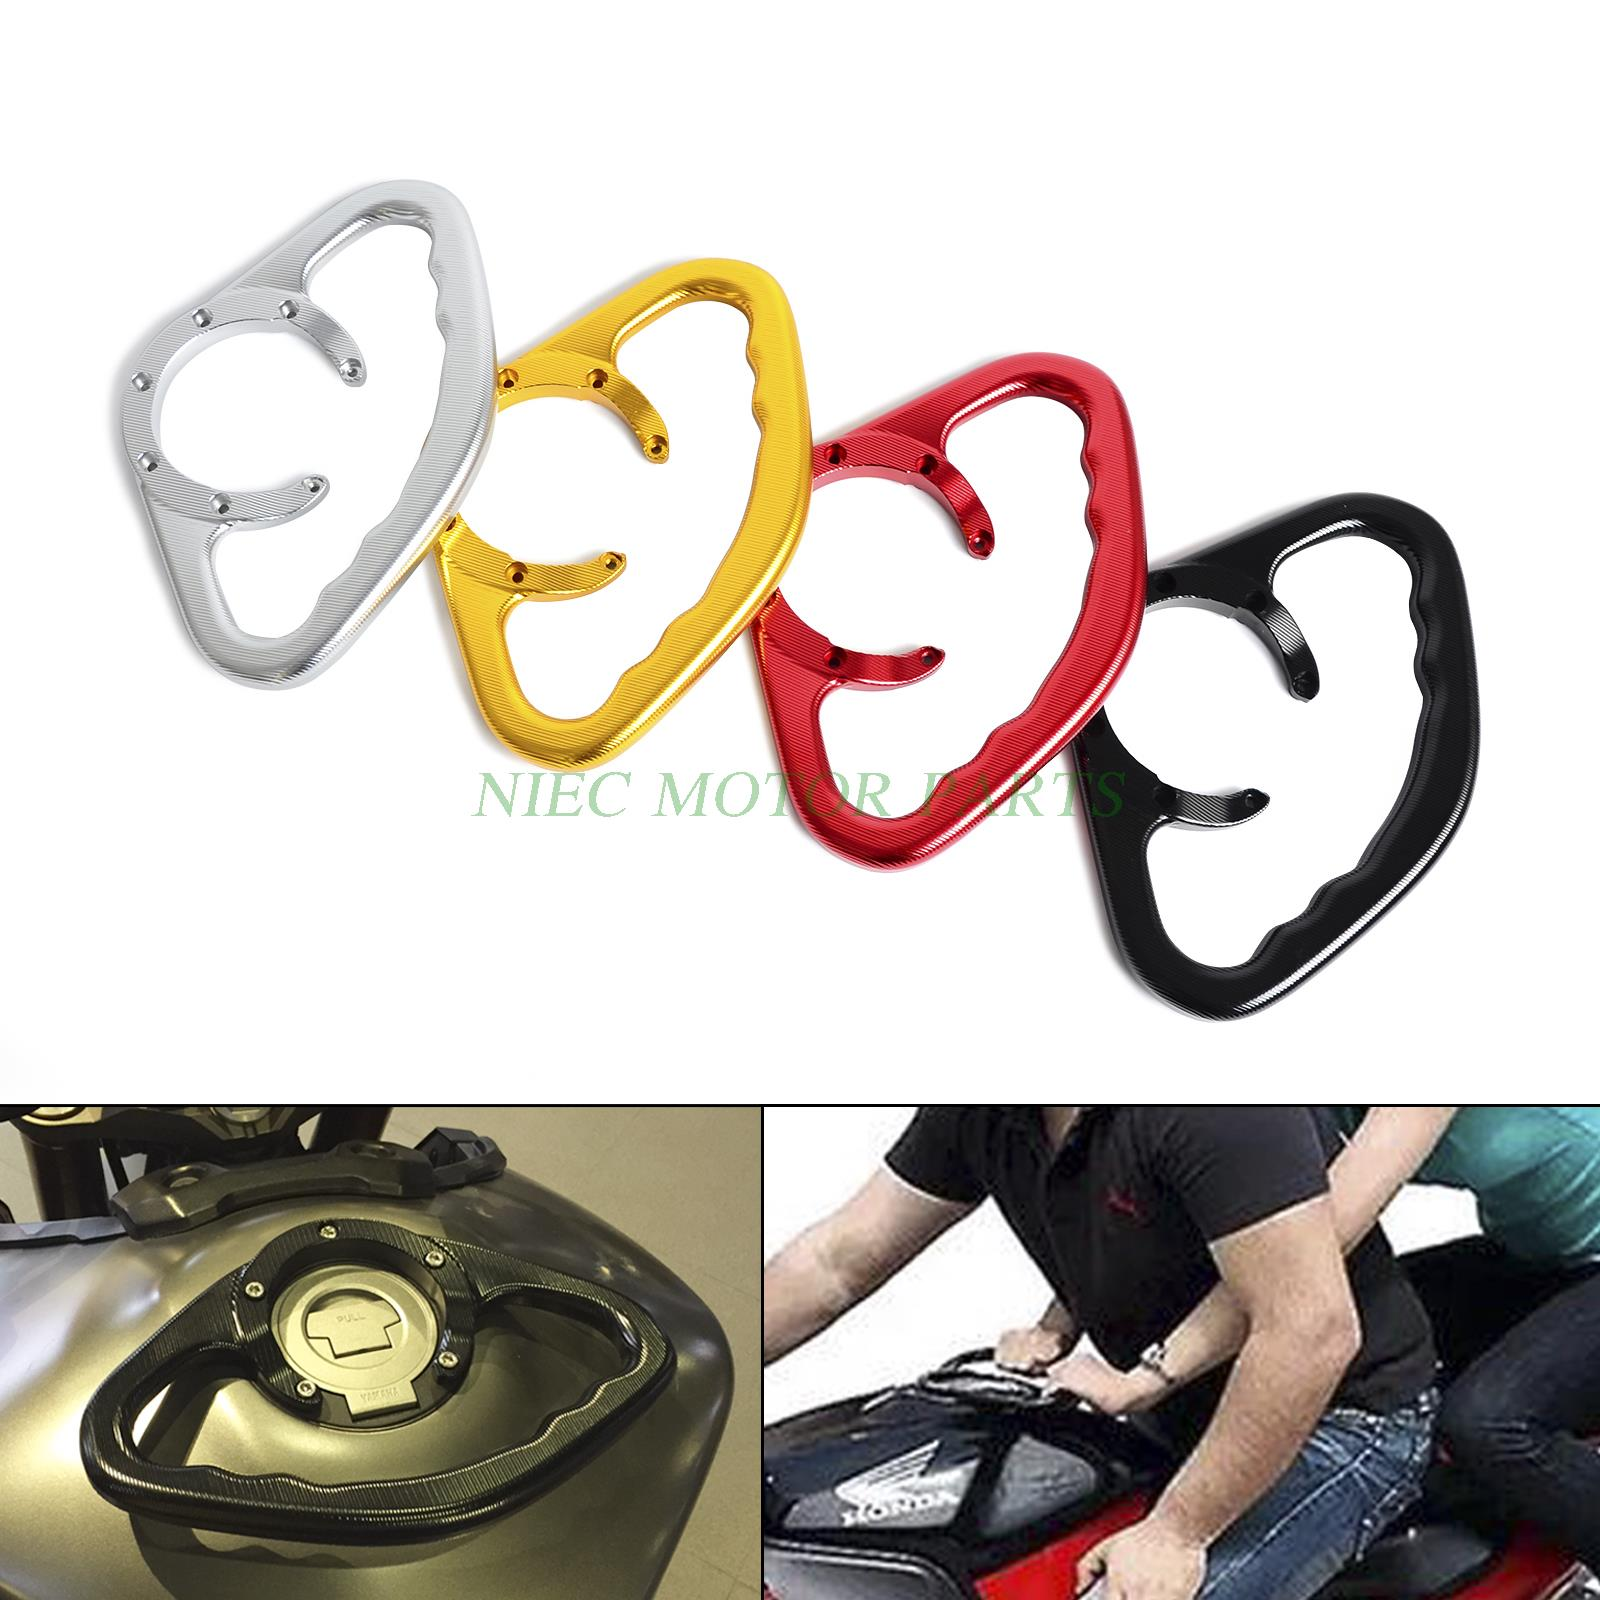 ФОТО Motorcycle CNC Tracer Passenger Gas Fuel Tank Handle Grab Bar For Honda CBR600RR CBR900RR CBR1000RR 2004-2013